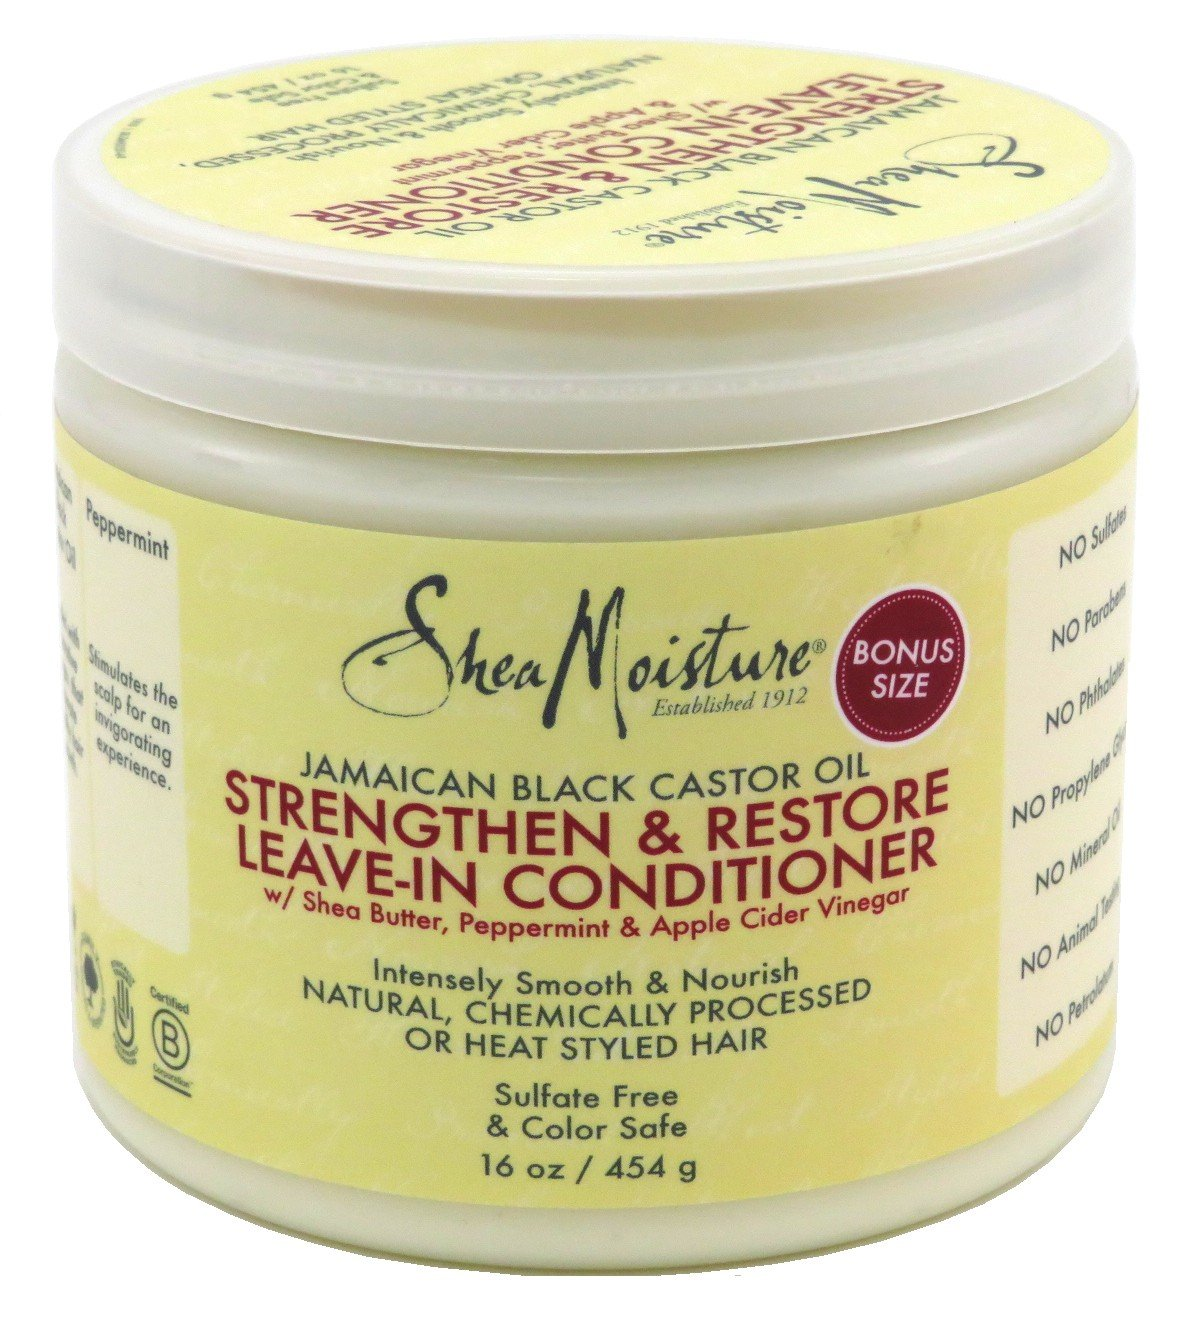 Shea Moisture Strengthen & Restore Leave-In Conditioner 16 oz (Pack of 3)